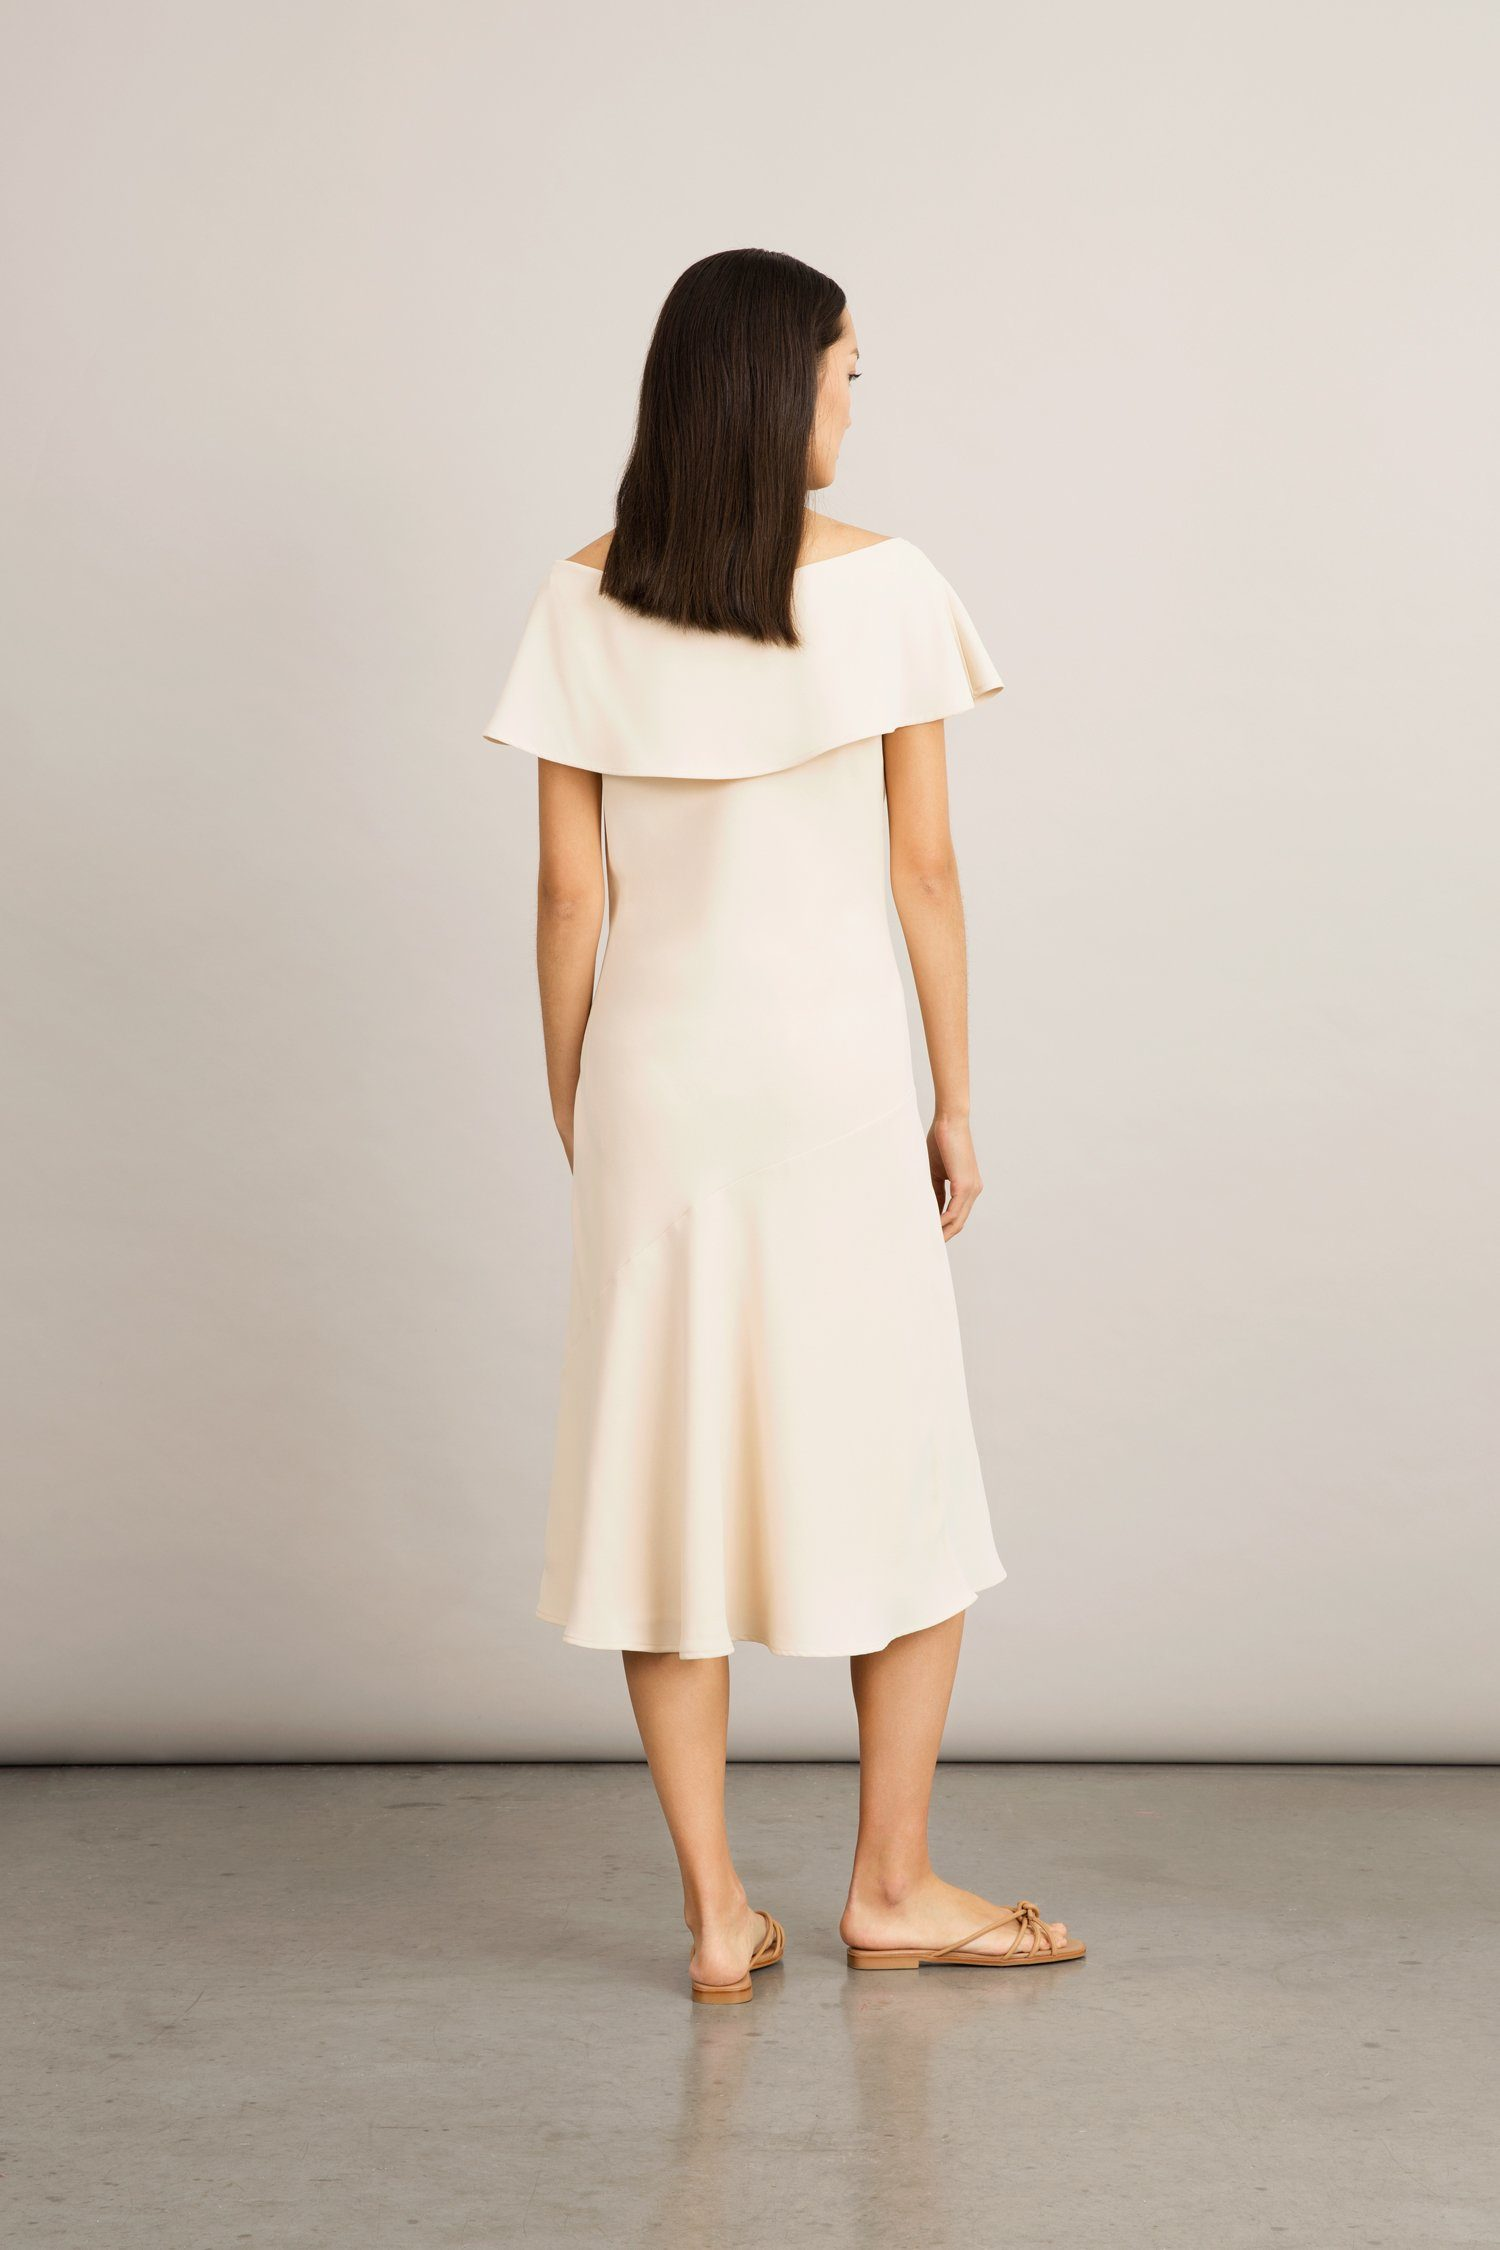 BINORO DRESS - CREAM Dress Stylein